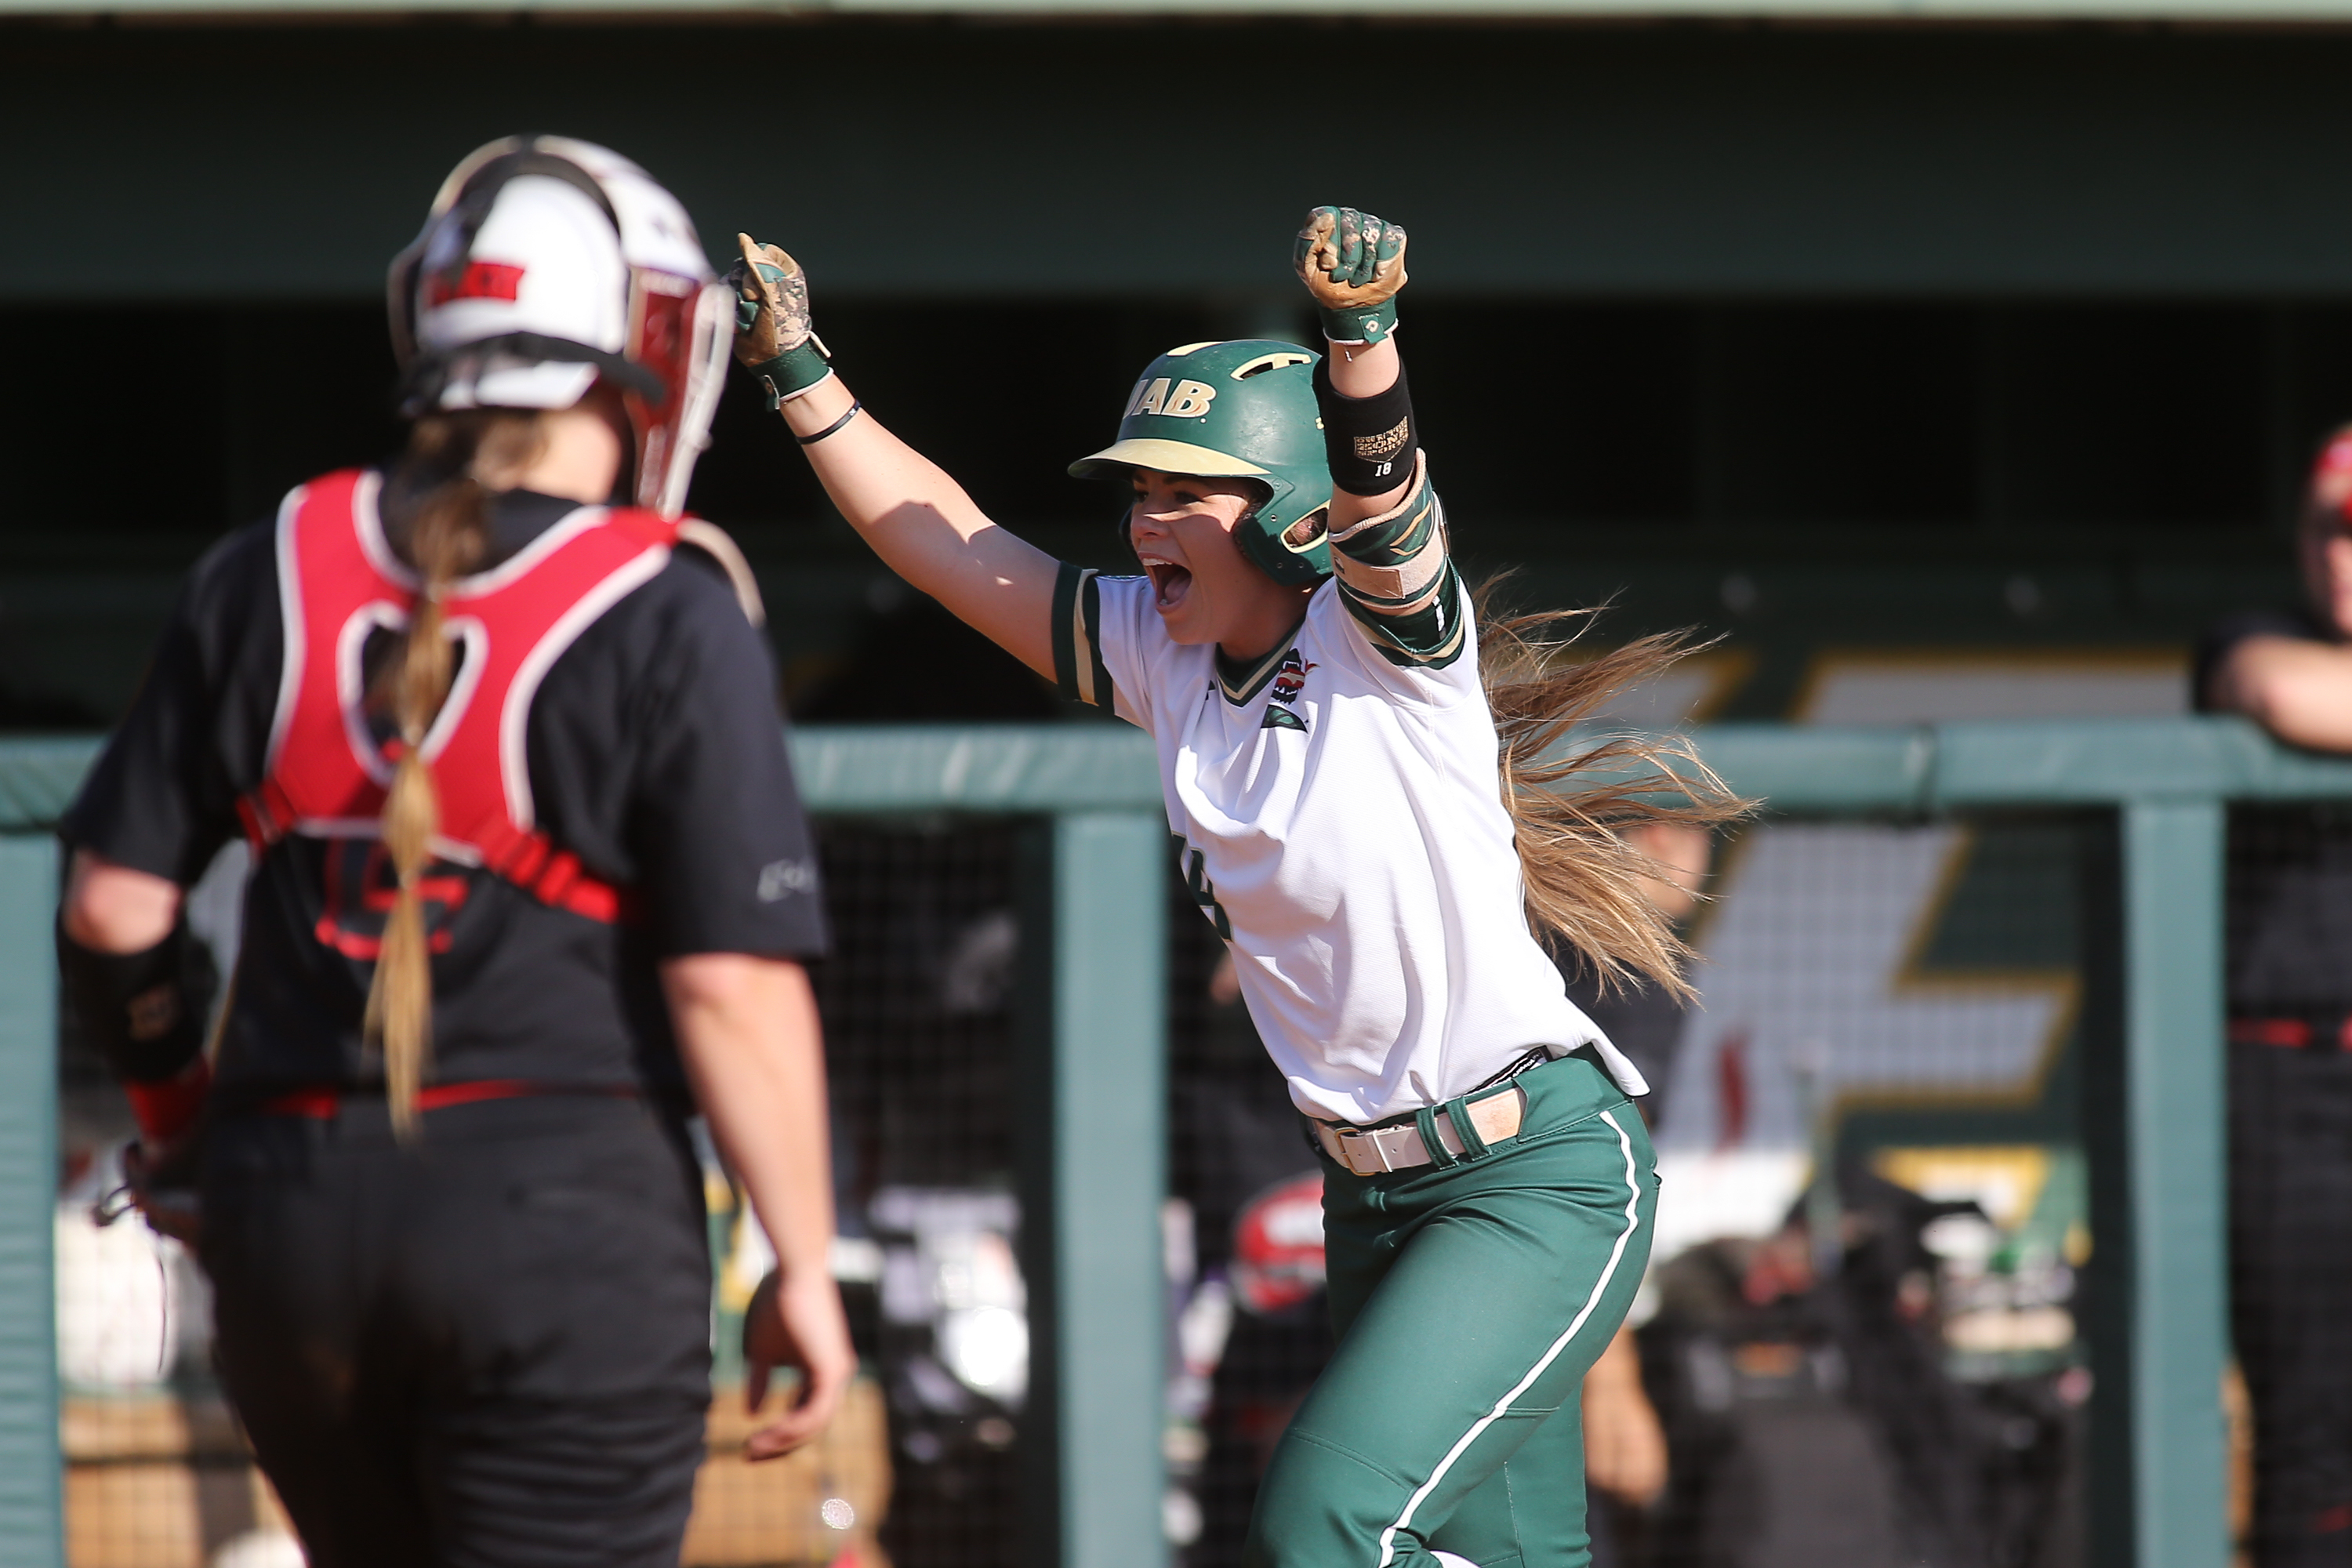 Lady Blazers take home series victories in dramatic fashion